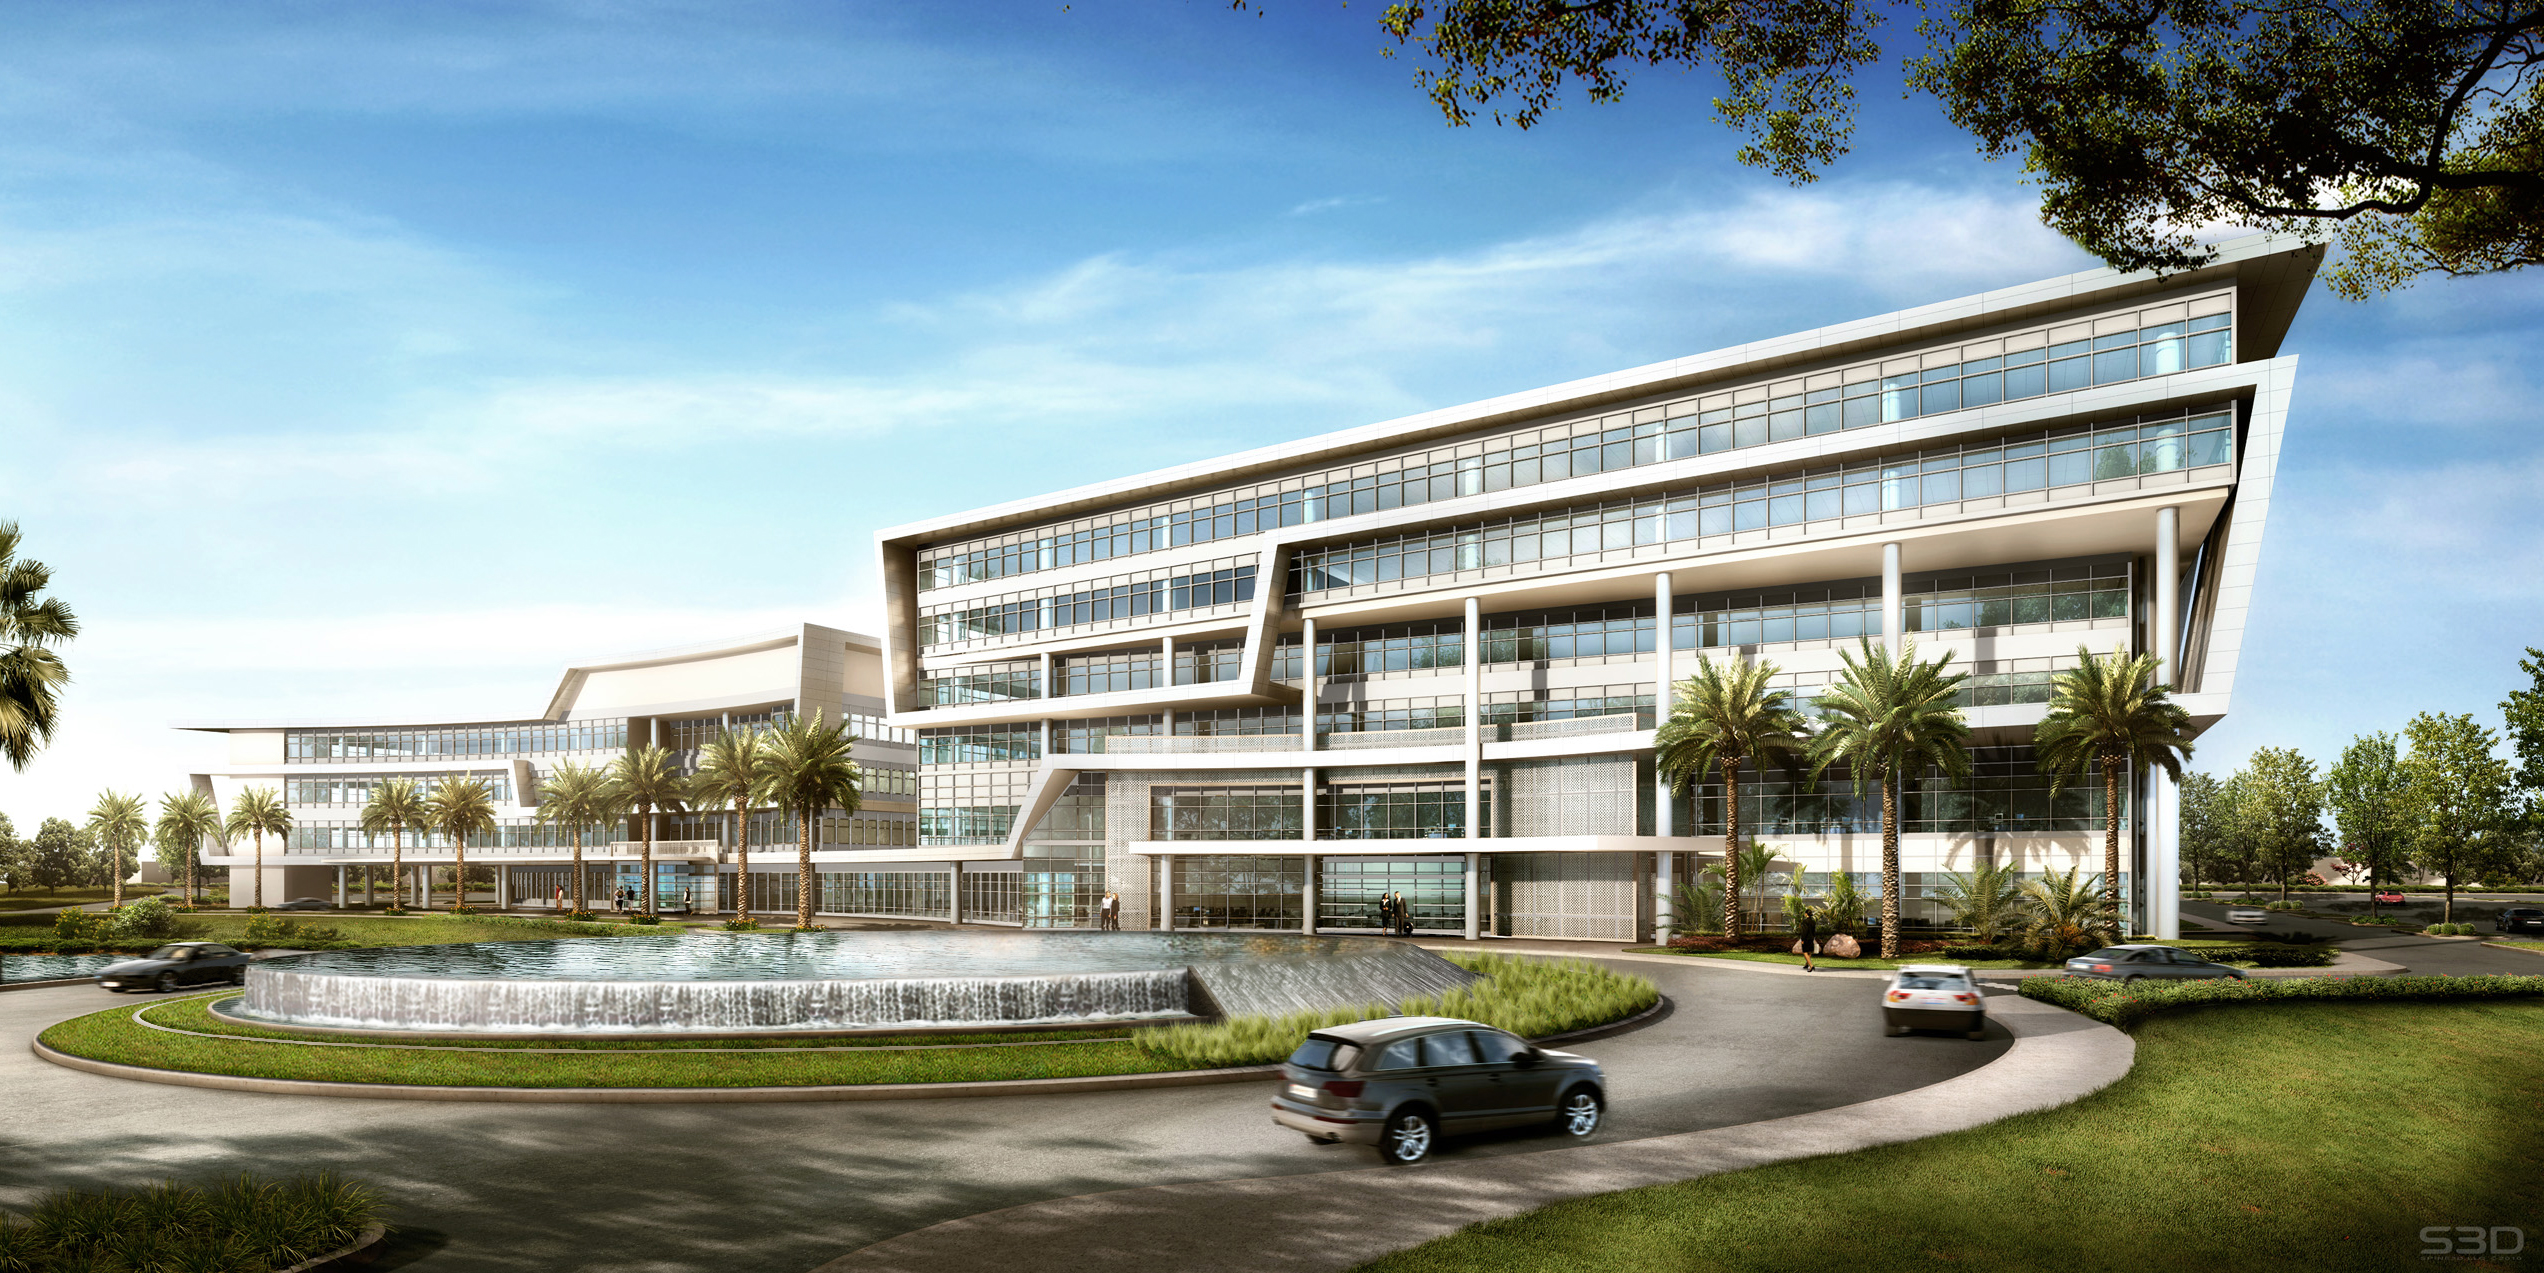 Uf Health Begins Construction Of Medical Office Complex In